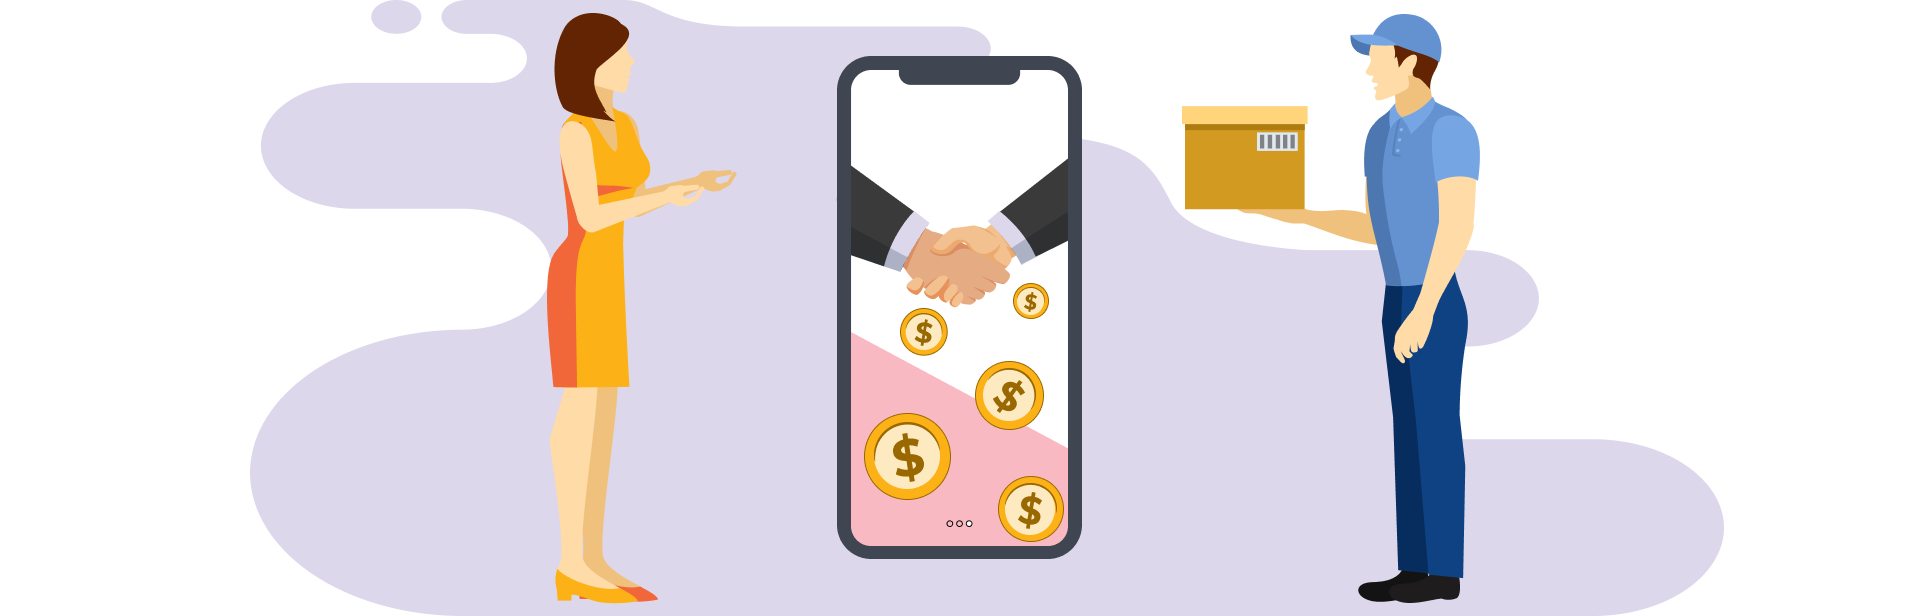 Getting a part of every payment completed on the platform, commission charging becomes one of the most lucrative revenue models.